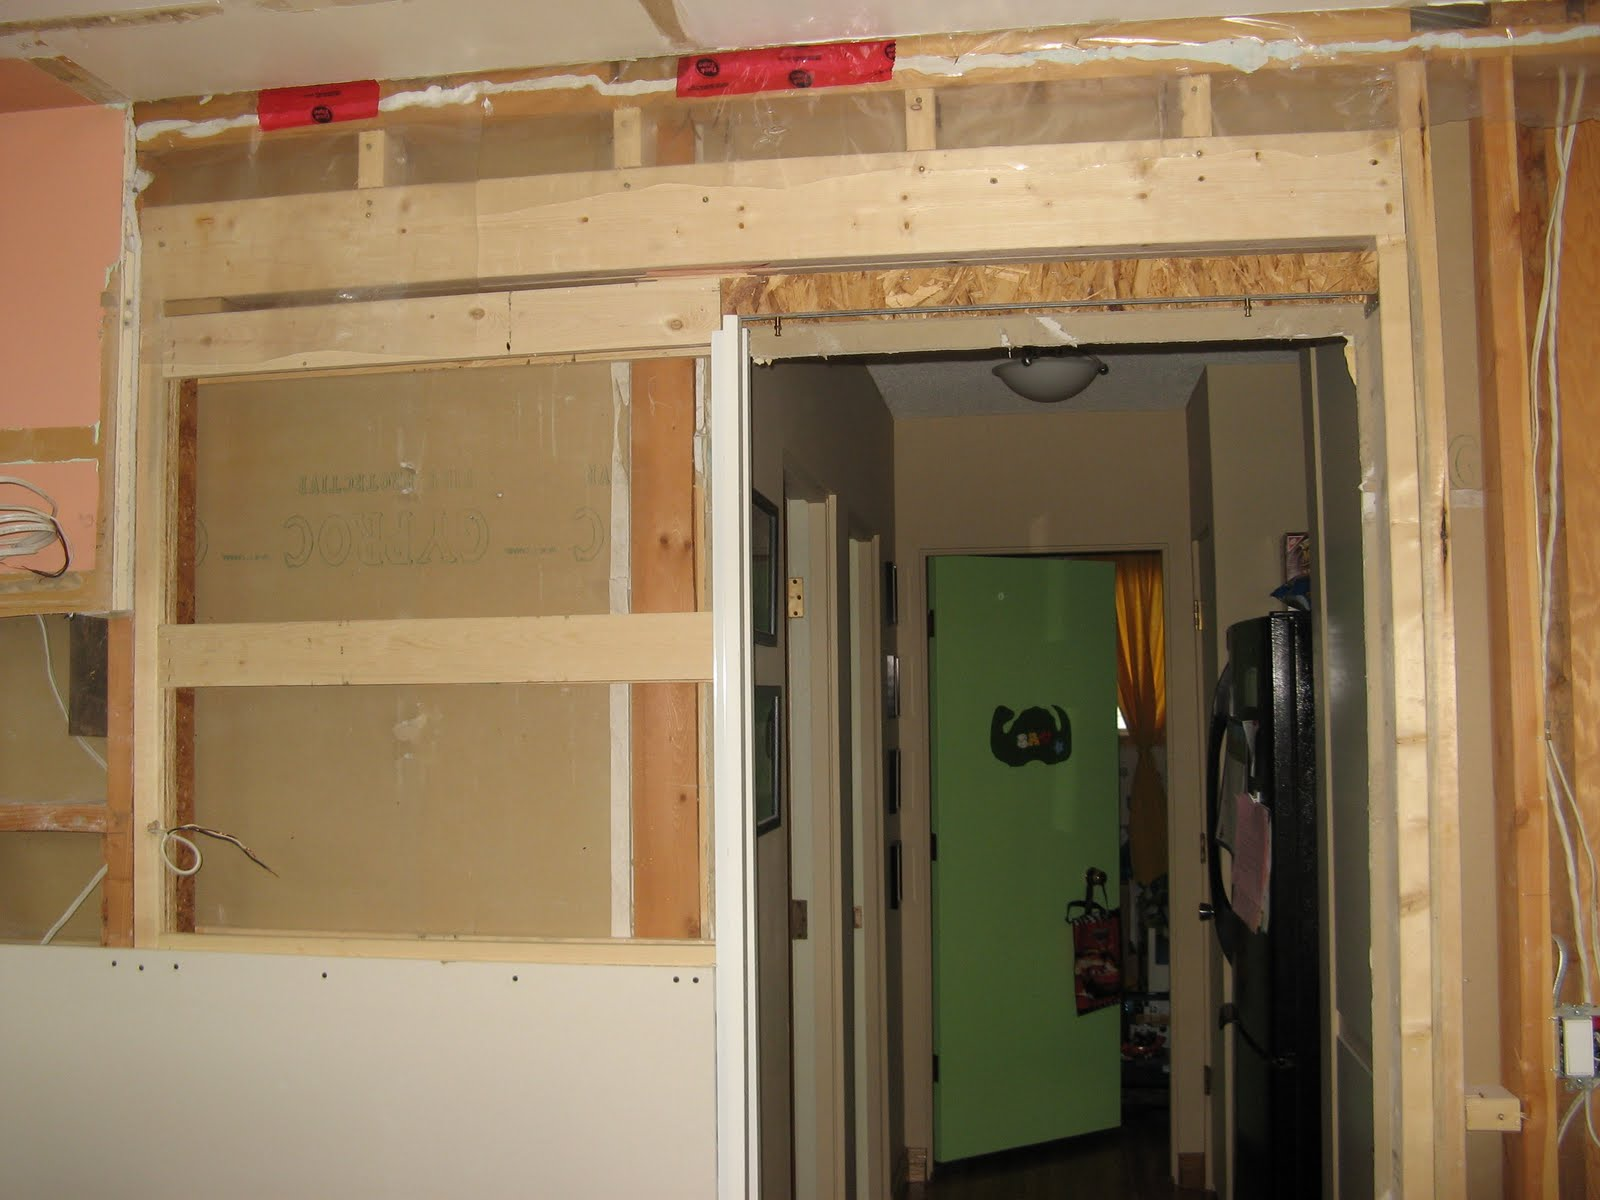 Superbe We Bought A Sliding Pocket Door Kit From Home Depot. It Comes Mostly  Assembled, We Just Had To Slide It Into The Opening Weu0027d Created Within The  Wall, ...